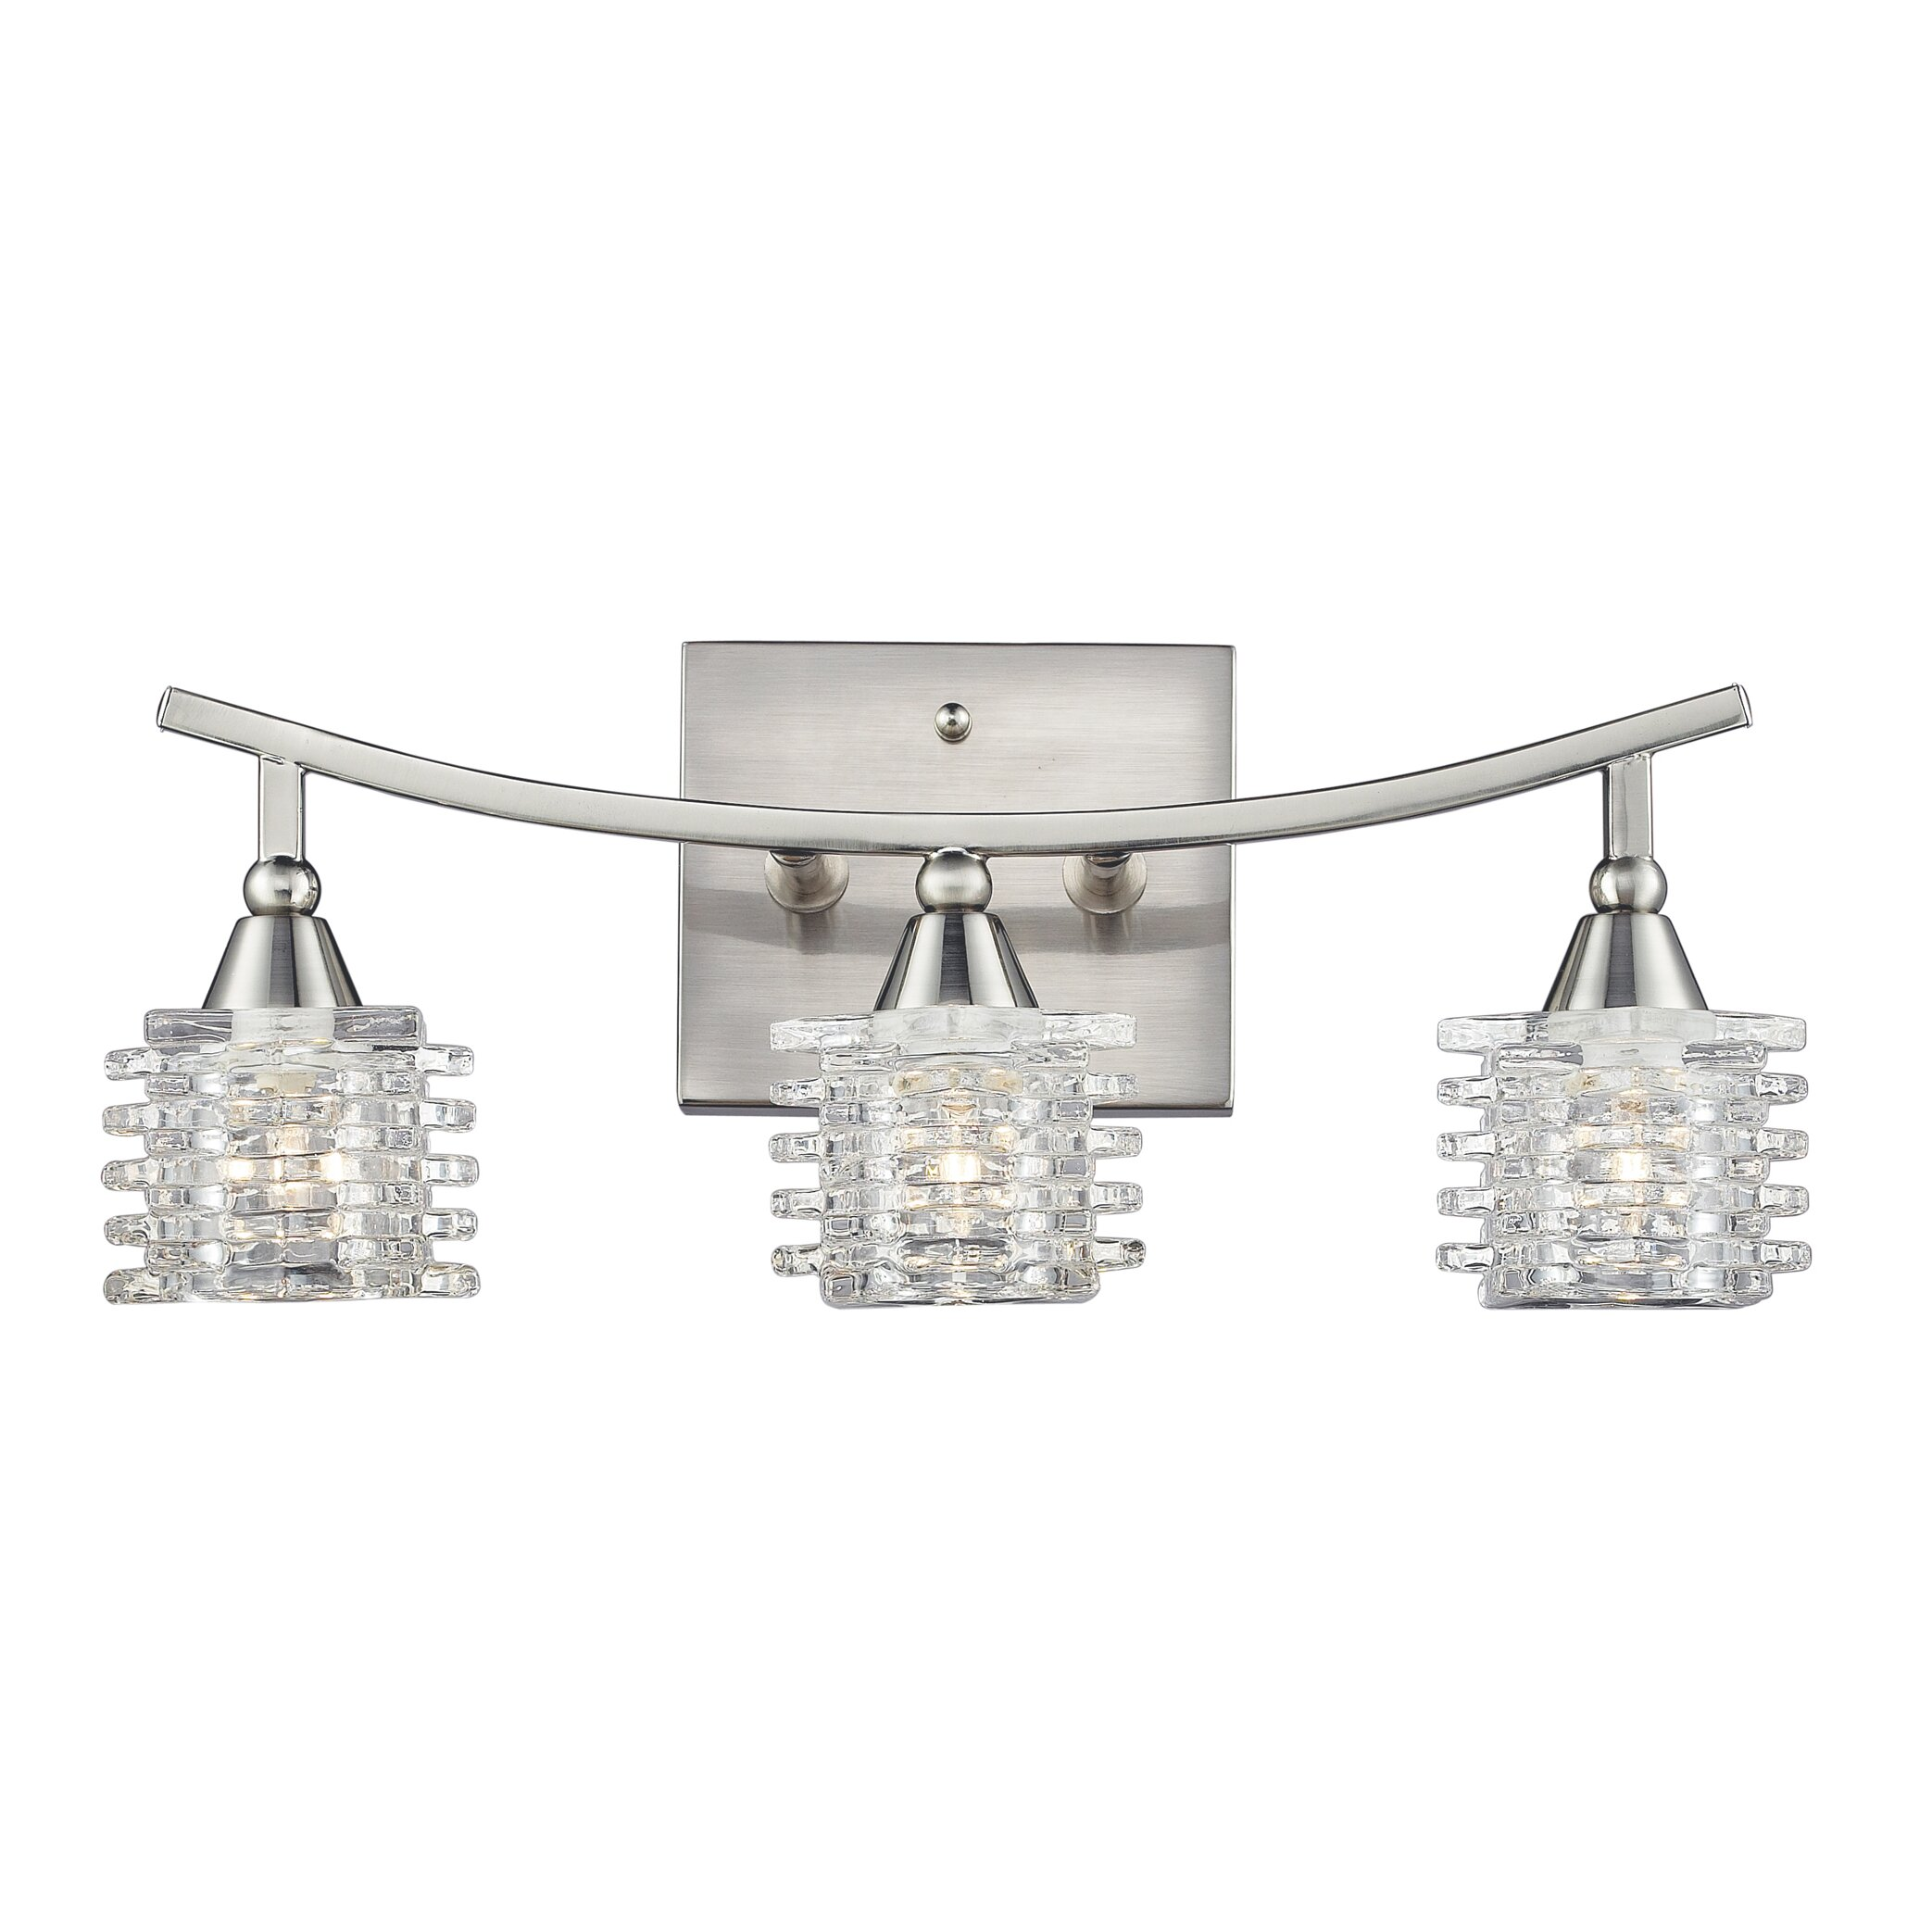 Elk Lighting Matrix 3 Light Bathroom Vanity Light & Reviews